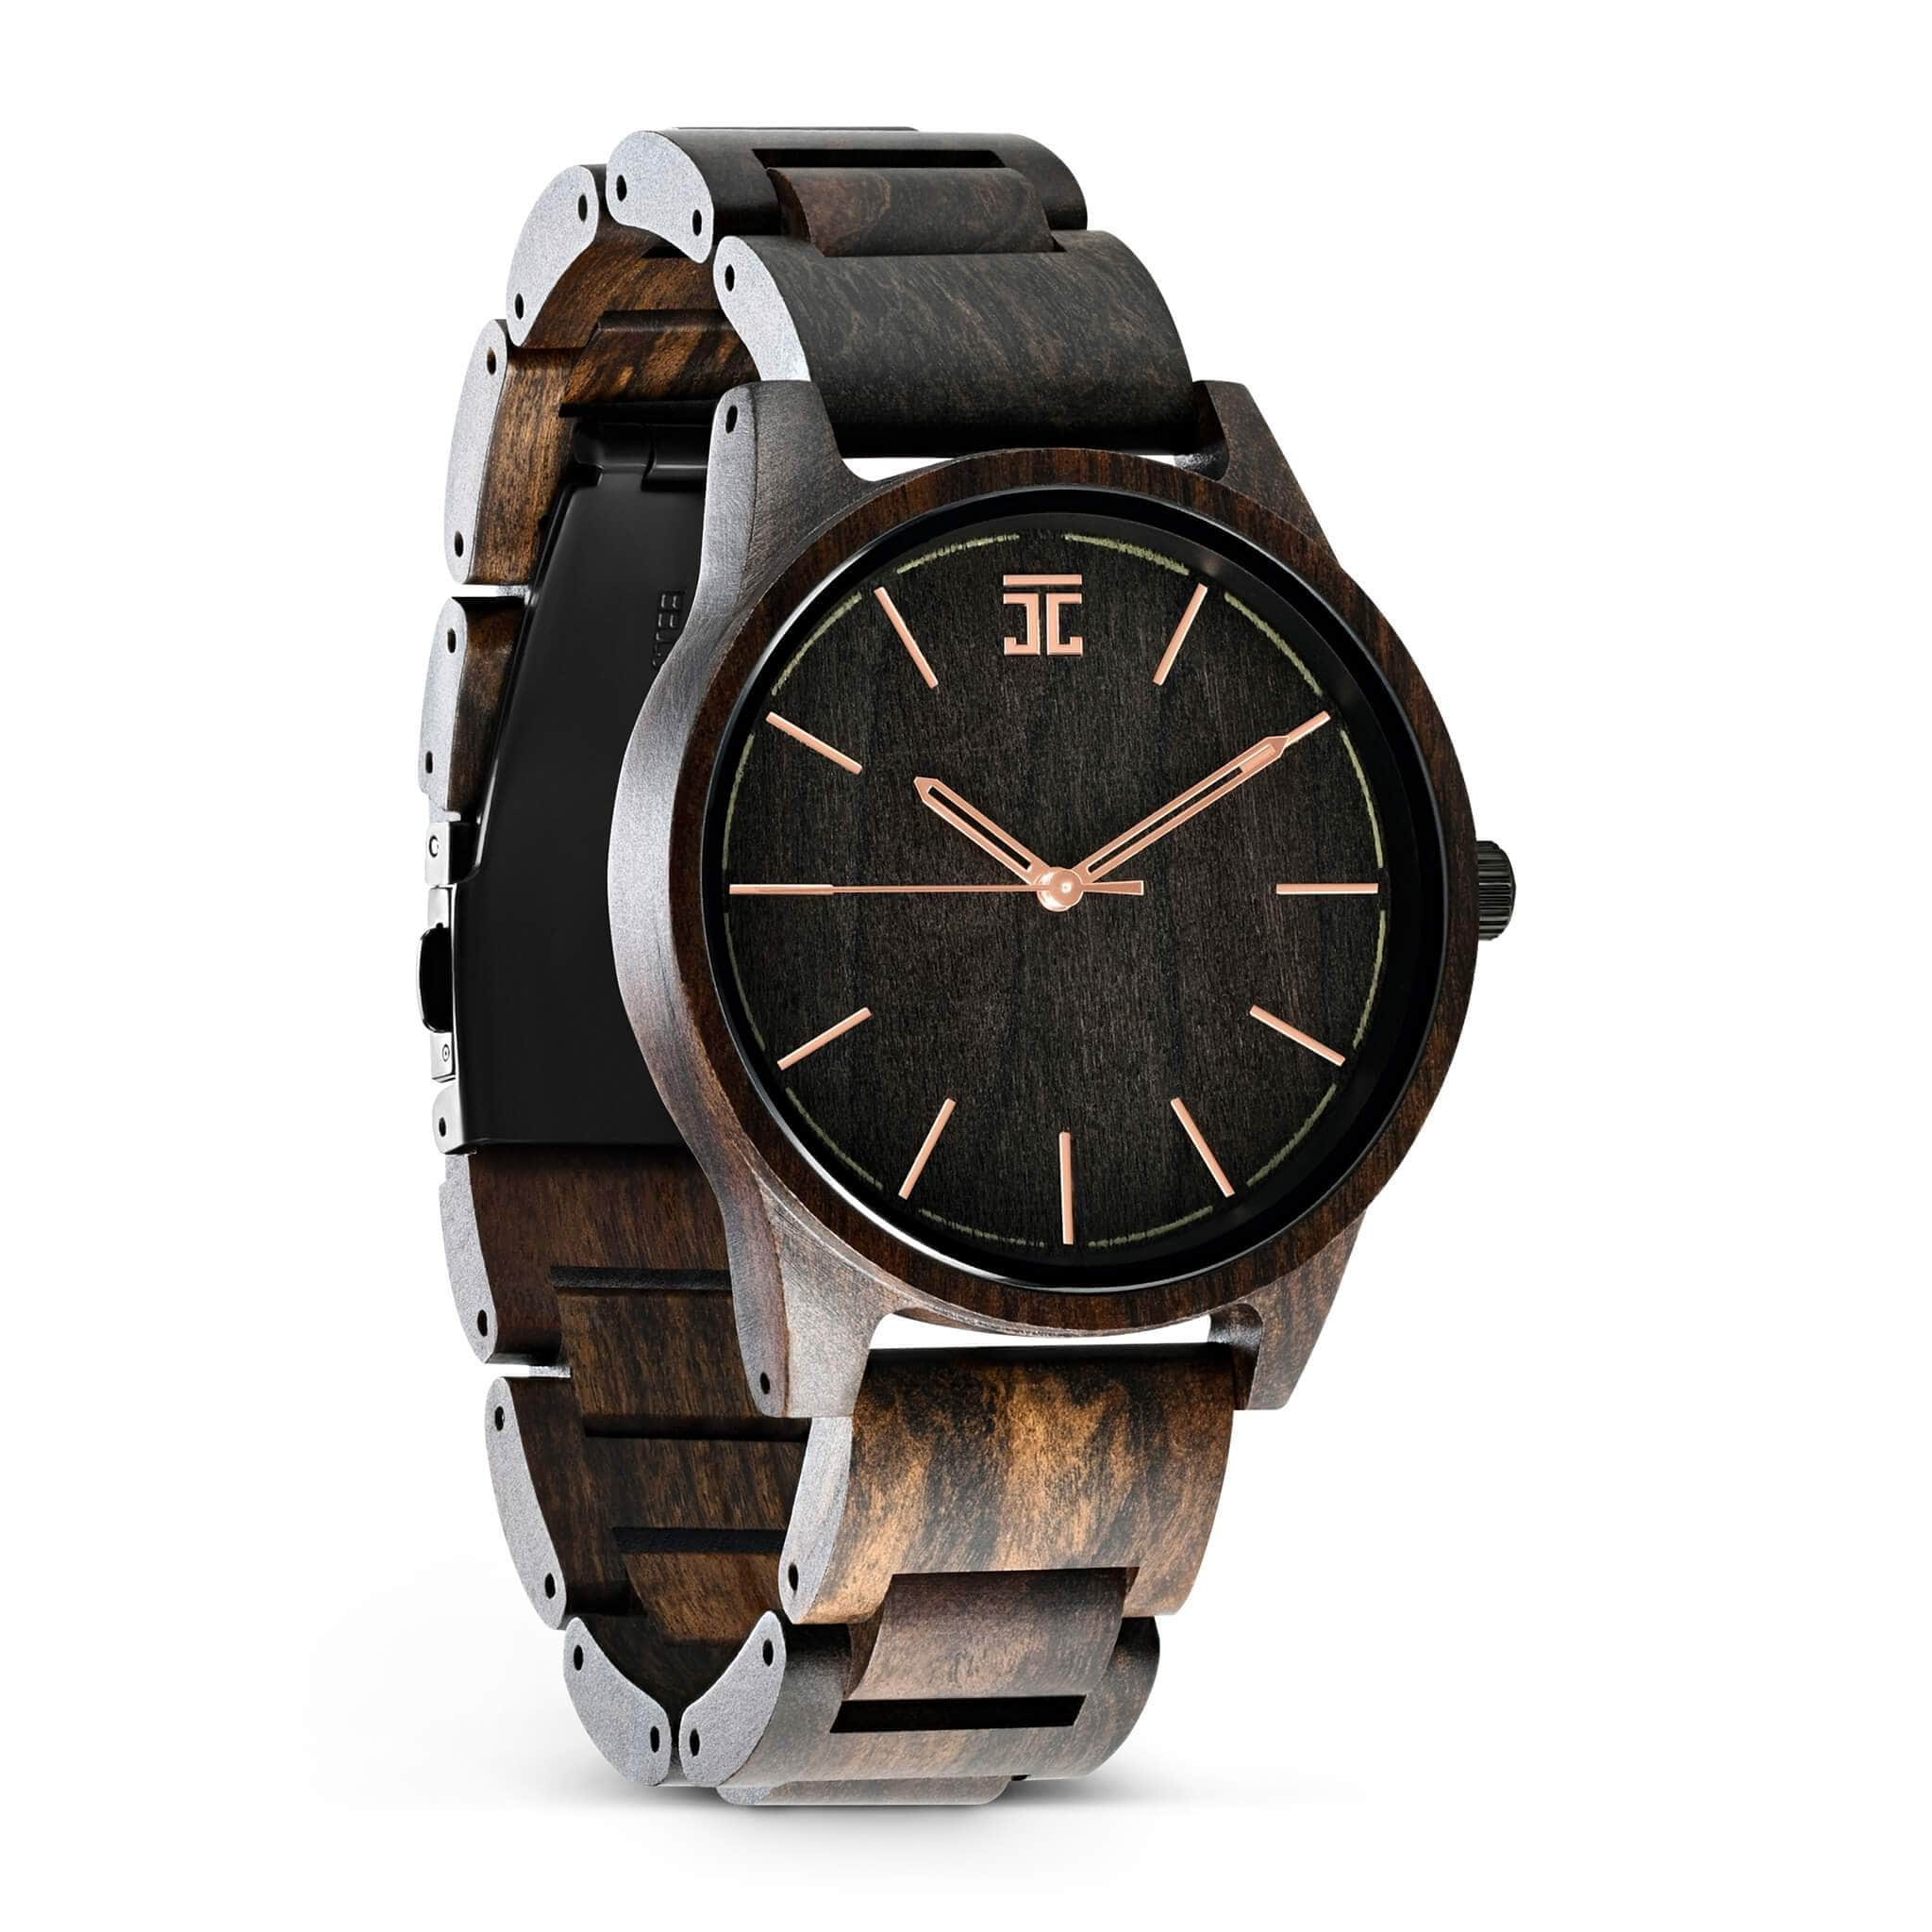 Chocolate Rose - Wooden Watches and Sunglasses - Joycoast